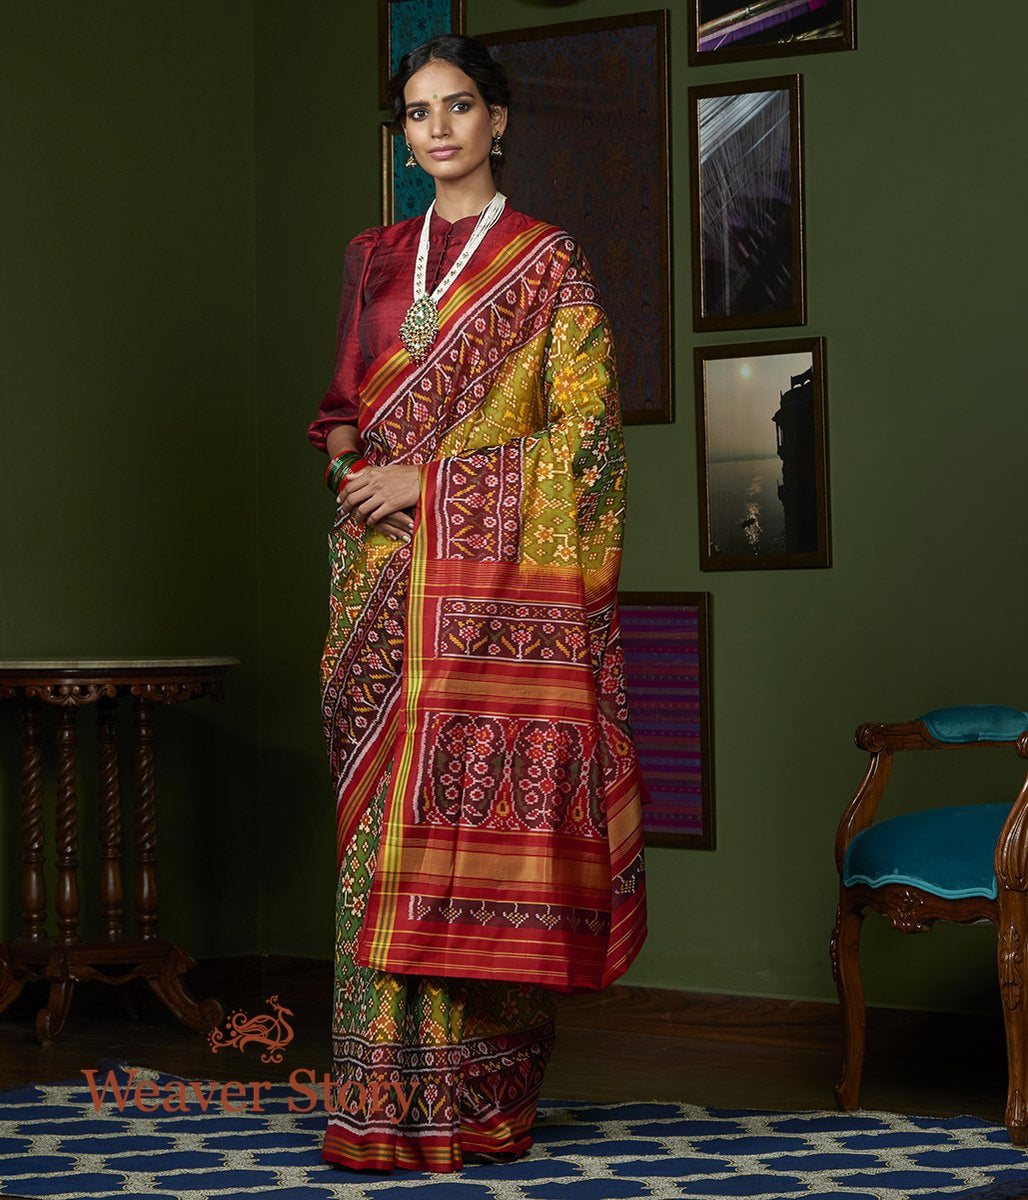 Handwoven Green and Yellow Dual Tone Gujarat Patola Saree with Maroon Border